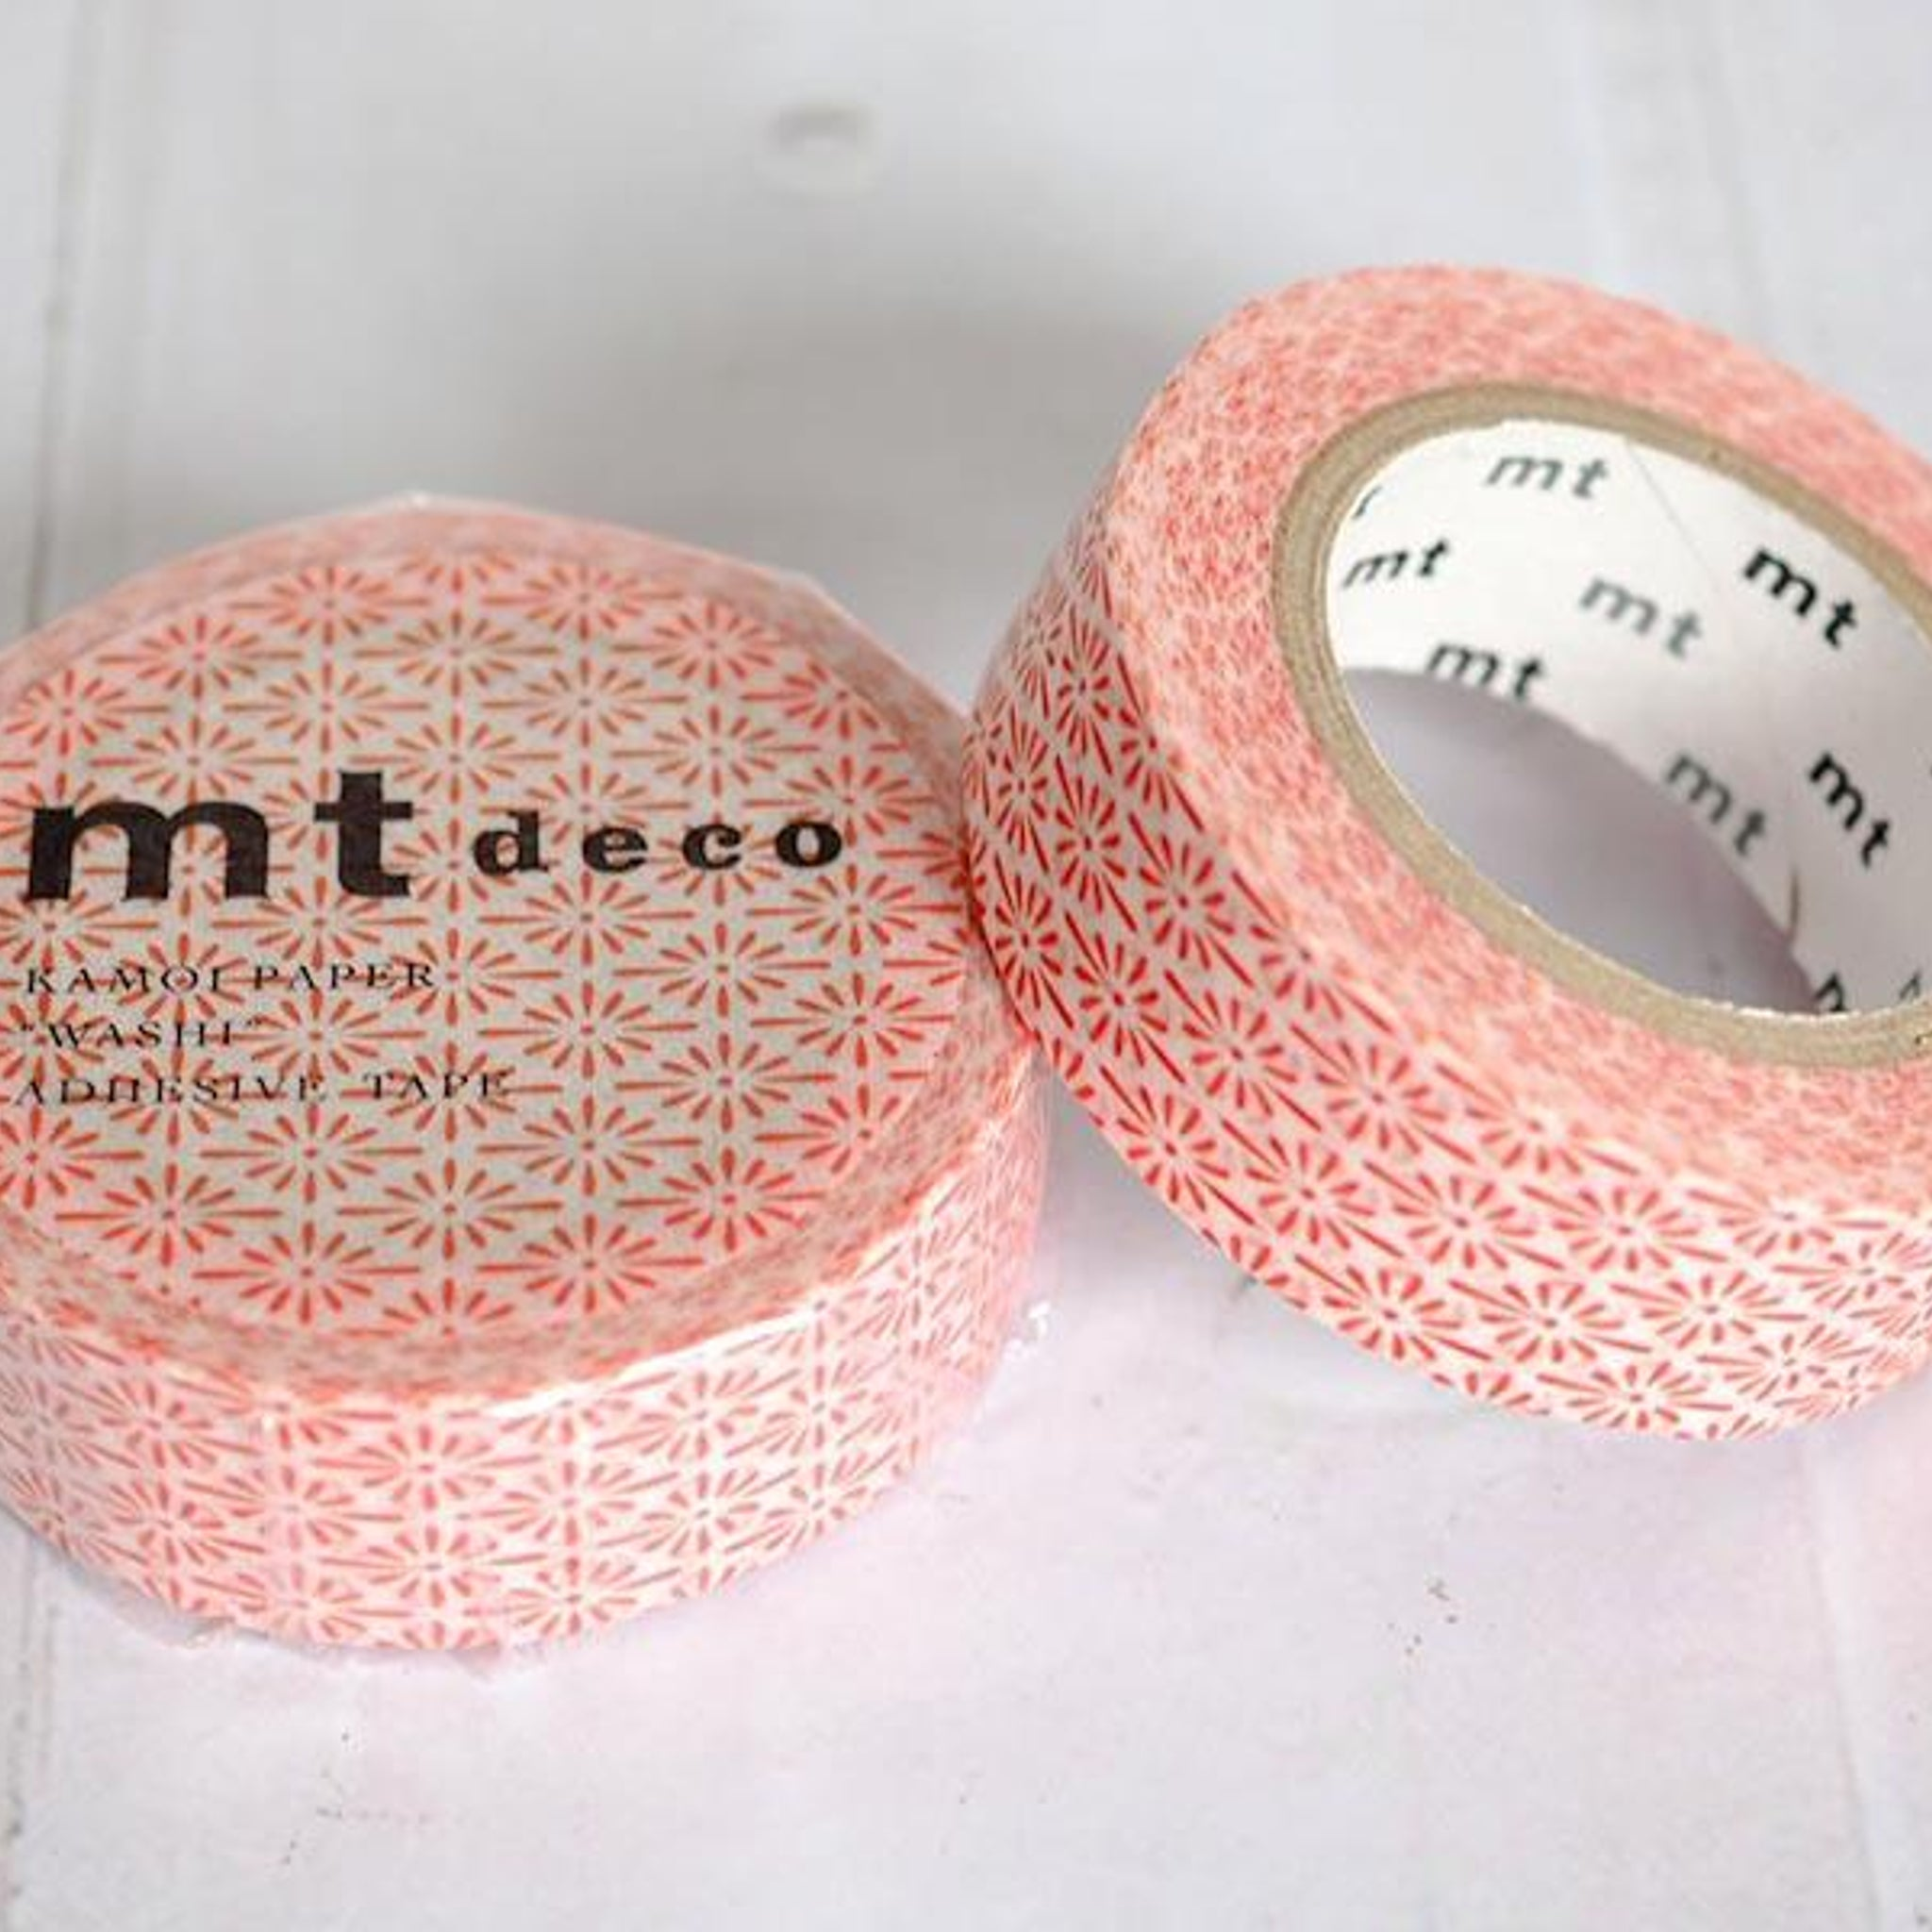 (DC) MT Deco Washi Tape Hanabishi Entan